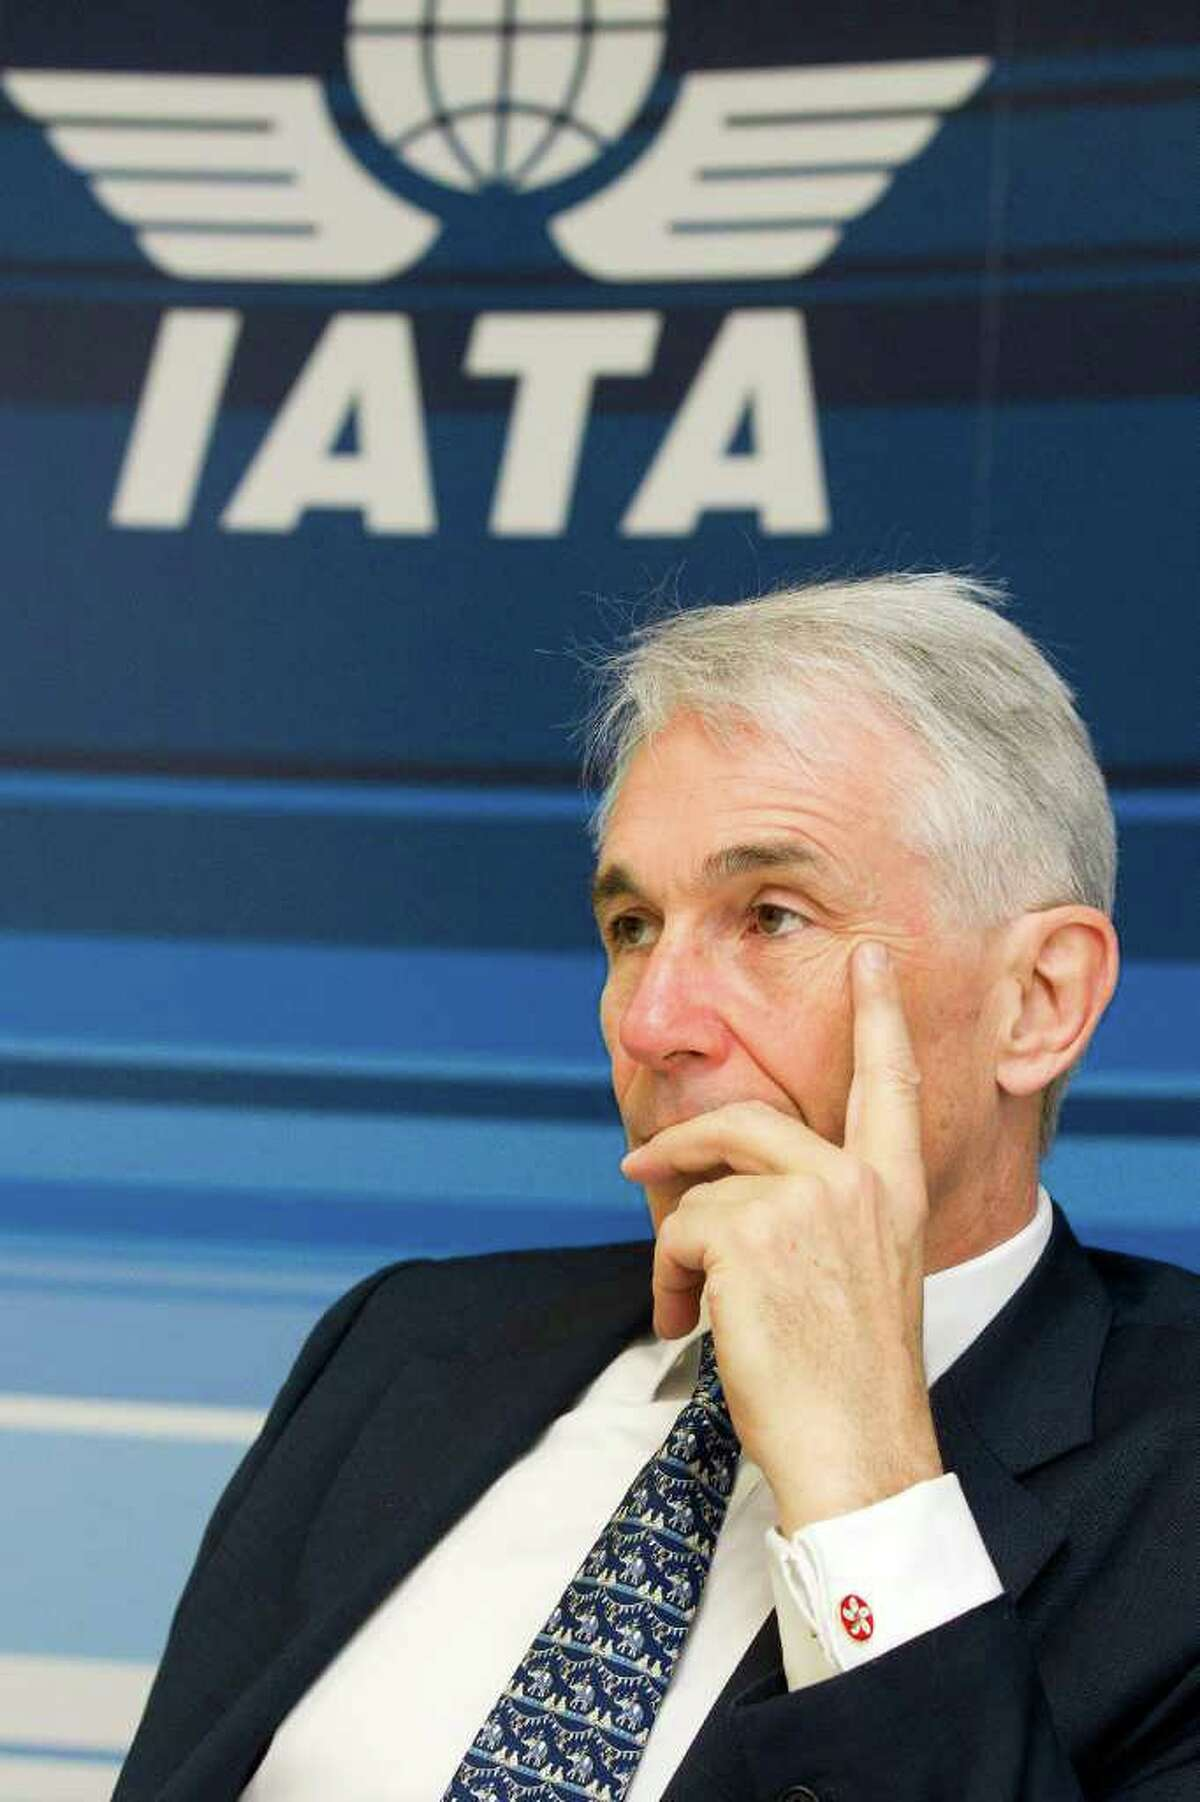 Tony Tyler, Director General and CEO of the International Air Transport Association, IATA, informs the media about the situation of the oil prices for the airlines and the updated financial forecast during a press conference in Geneva, Switzerland, Tuesday, March 20, 2012. (AP Photo/Keystone, Salvatore Di Nolfi)